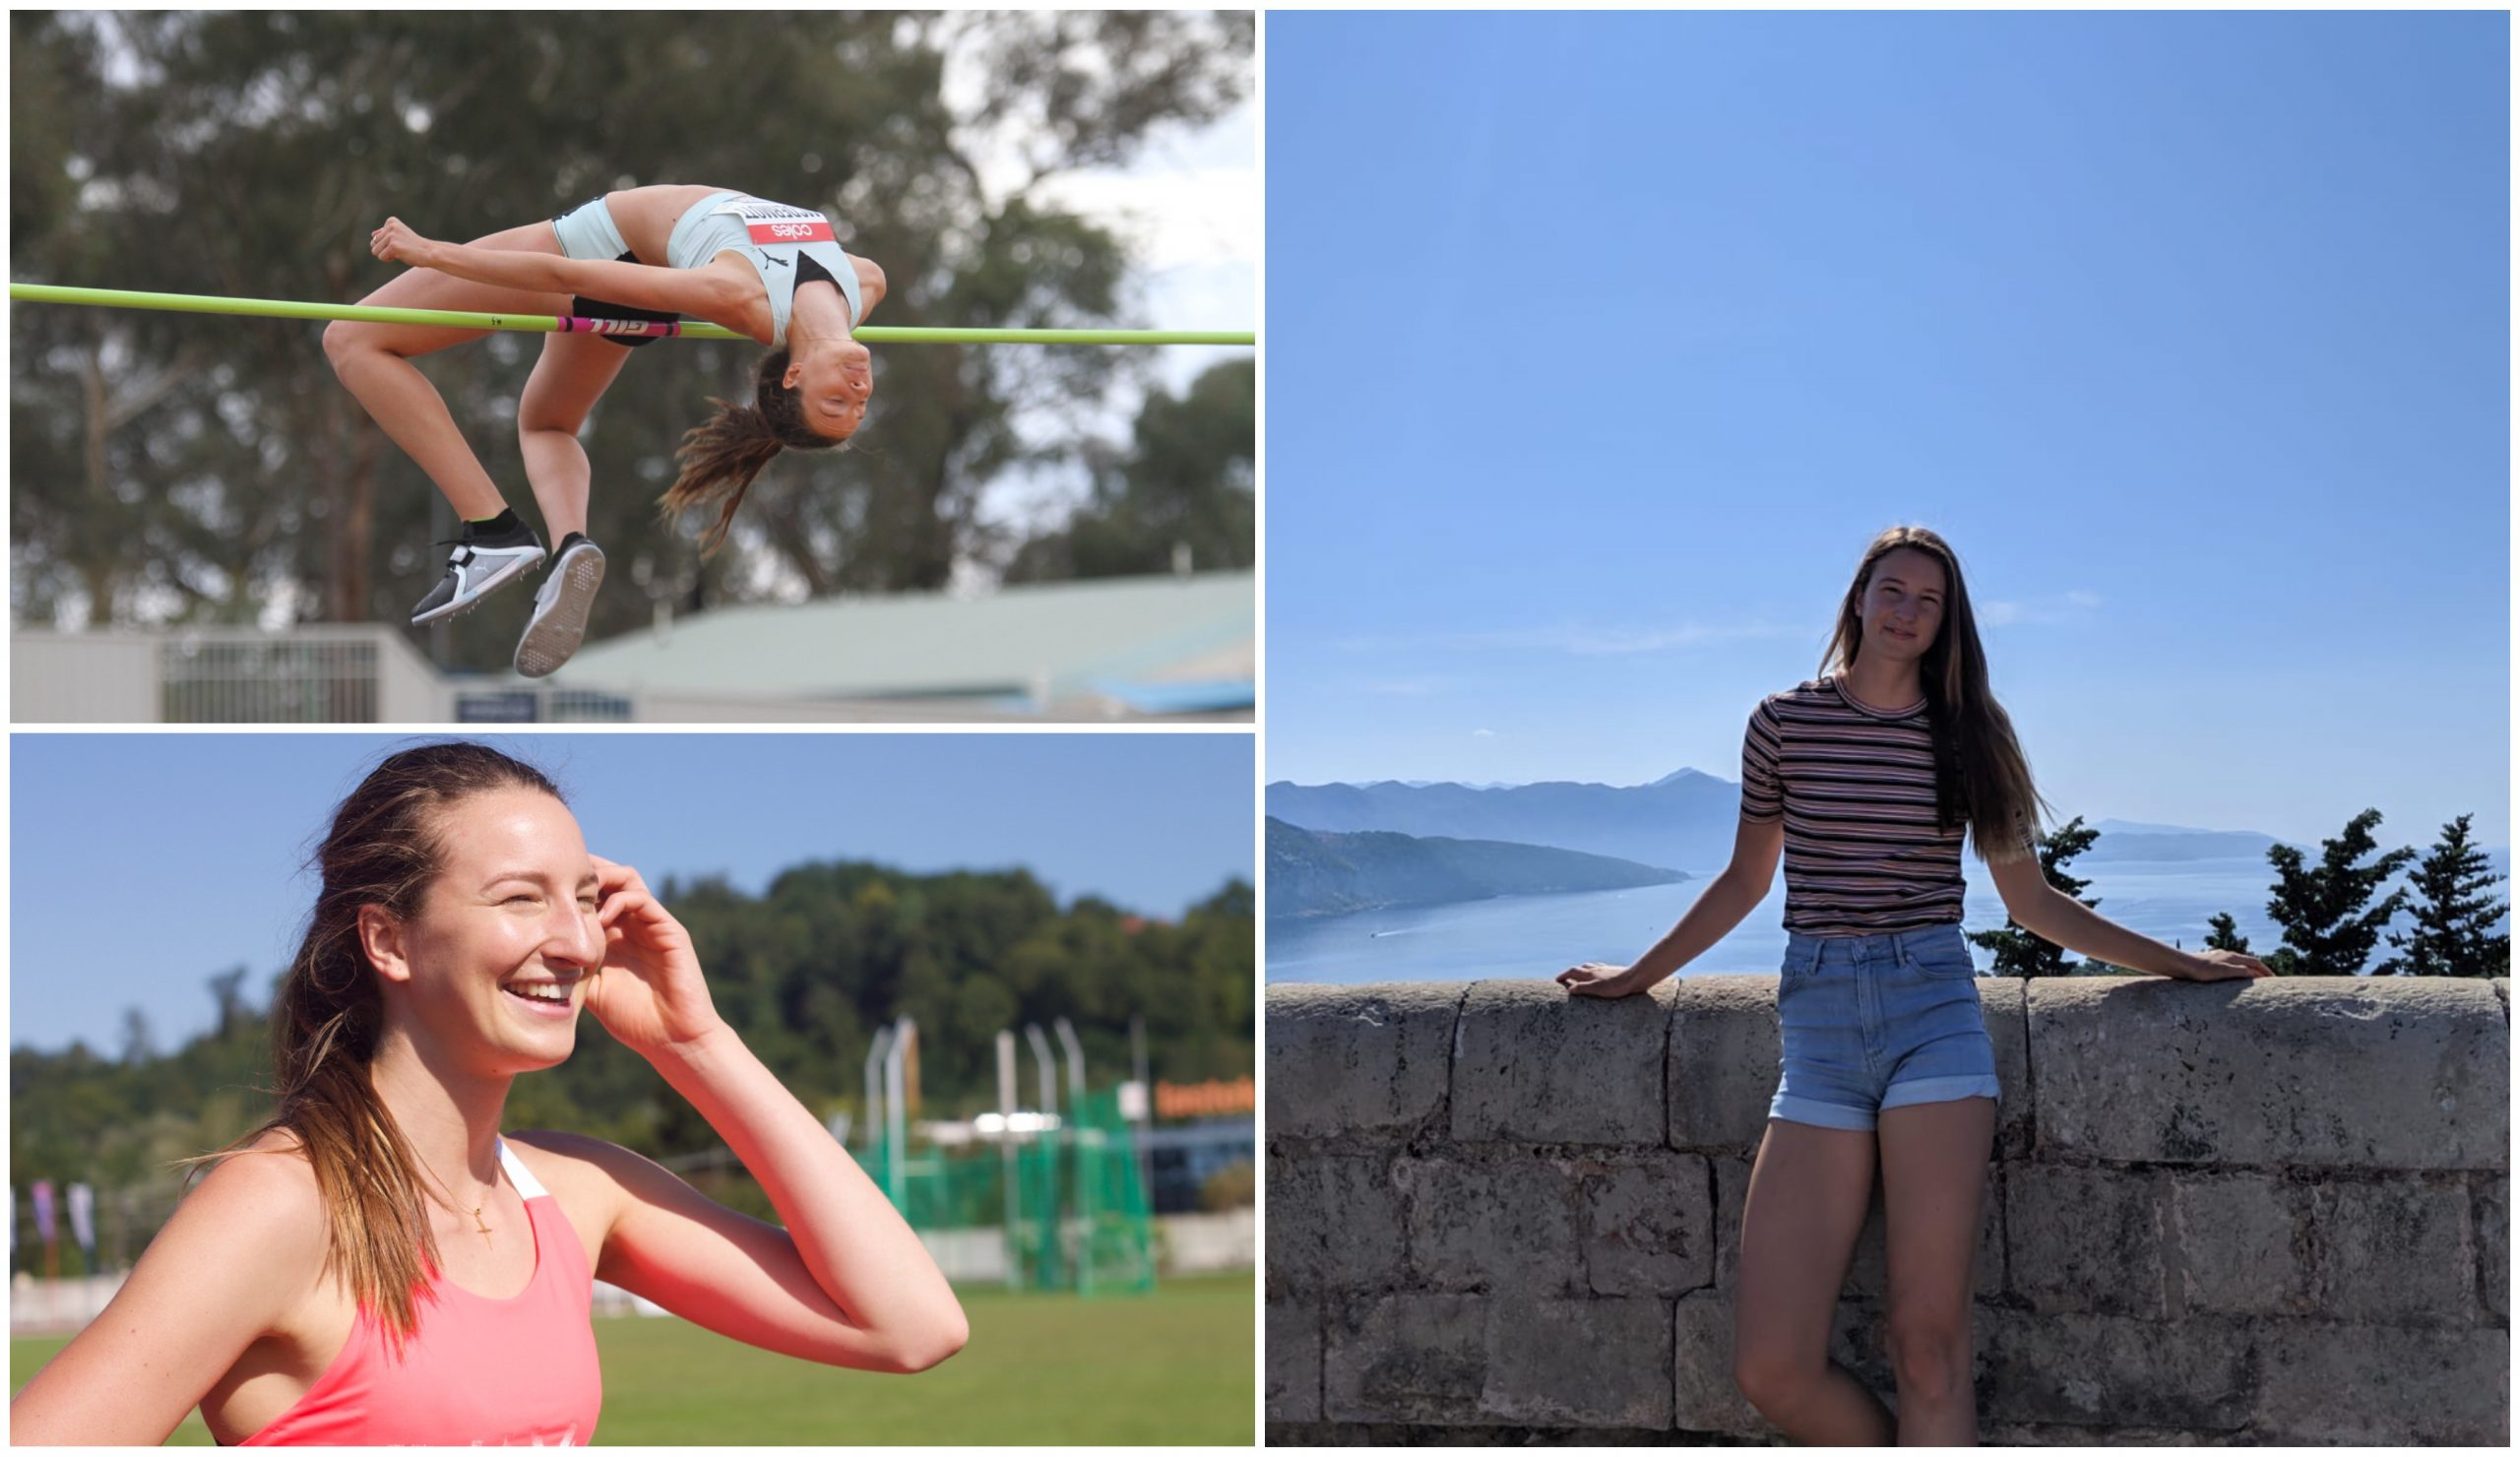 Nicola McDermott – the Australian high jump star with Croatian roots – excited to be competing in Zagreb